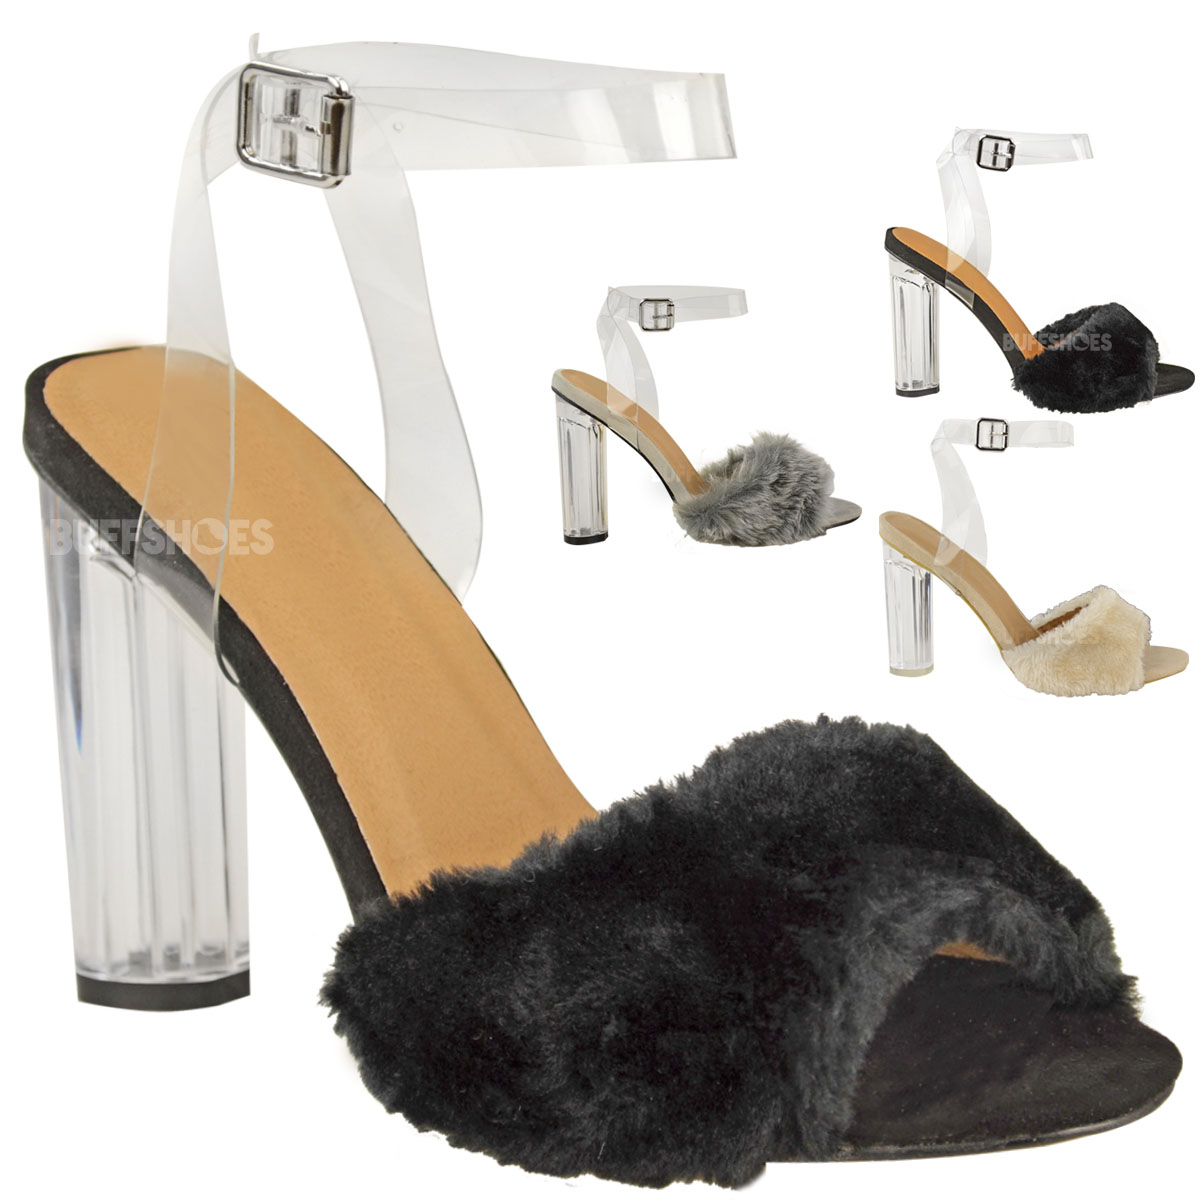 damen high heels mit transparentem blockabsatz. Black Bedroom Furniture Sets. Home Design Ideas